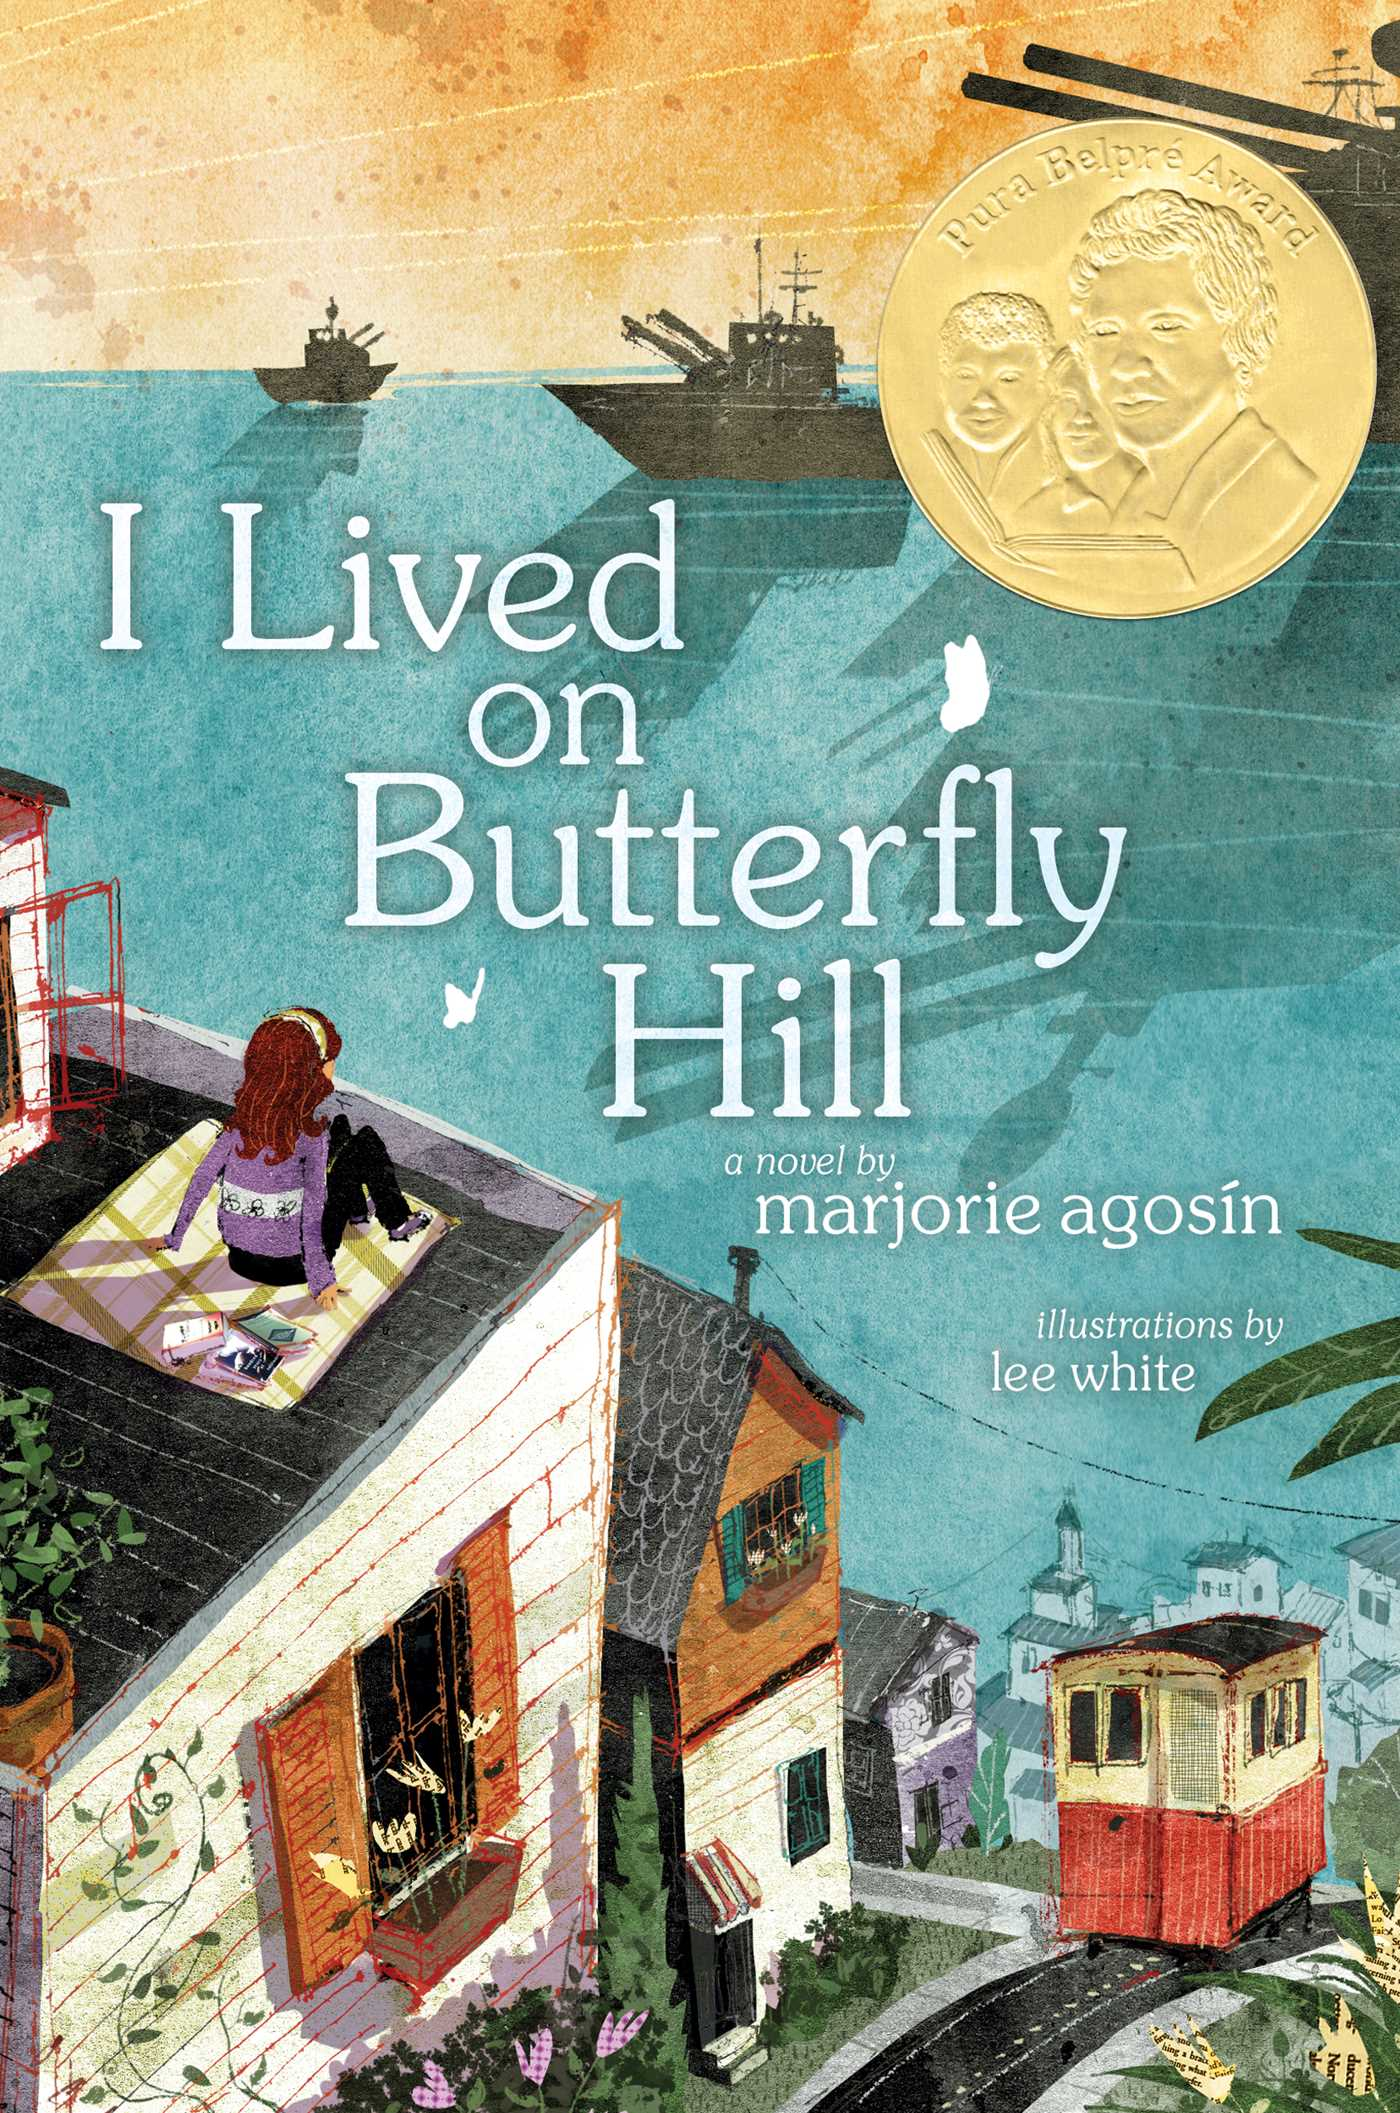 I-lived-on-butterfly-hill-9781416953449_hr